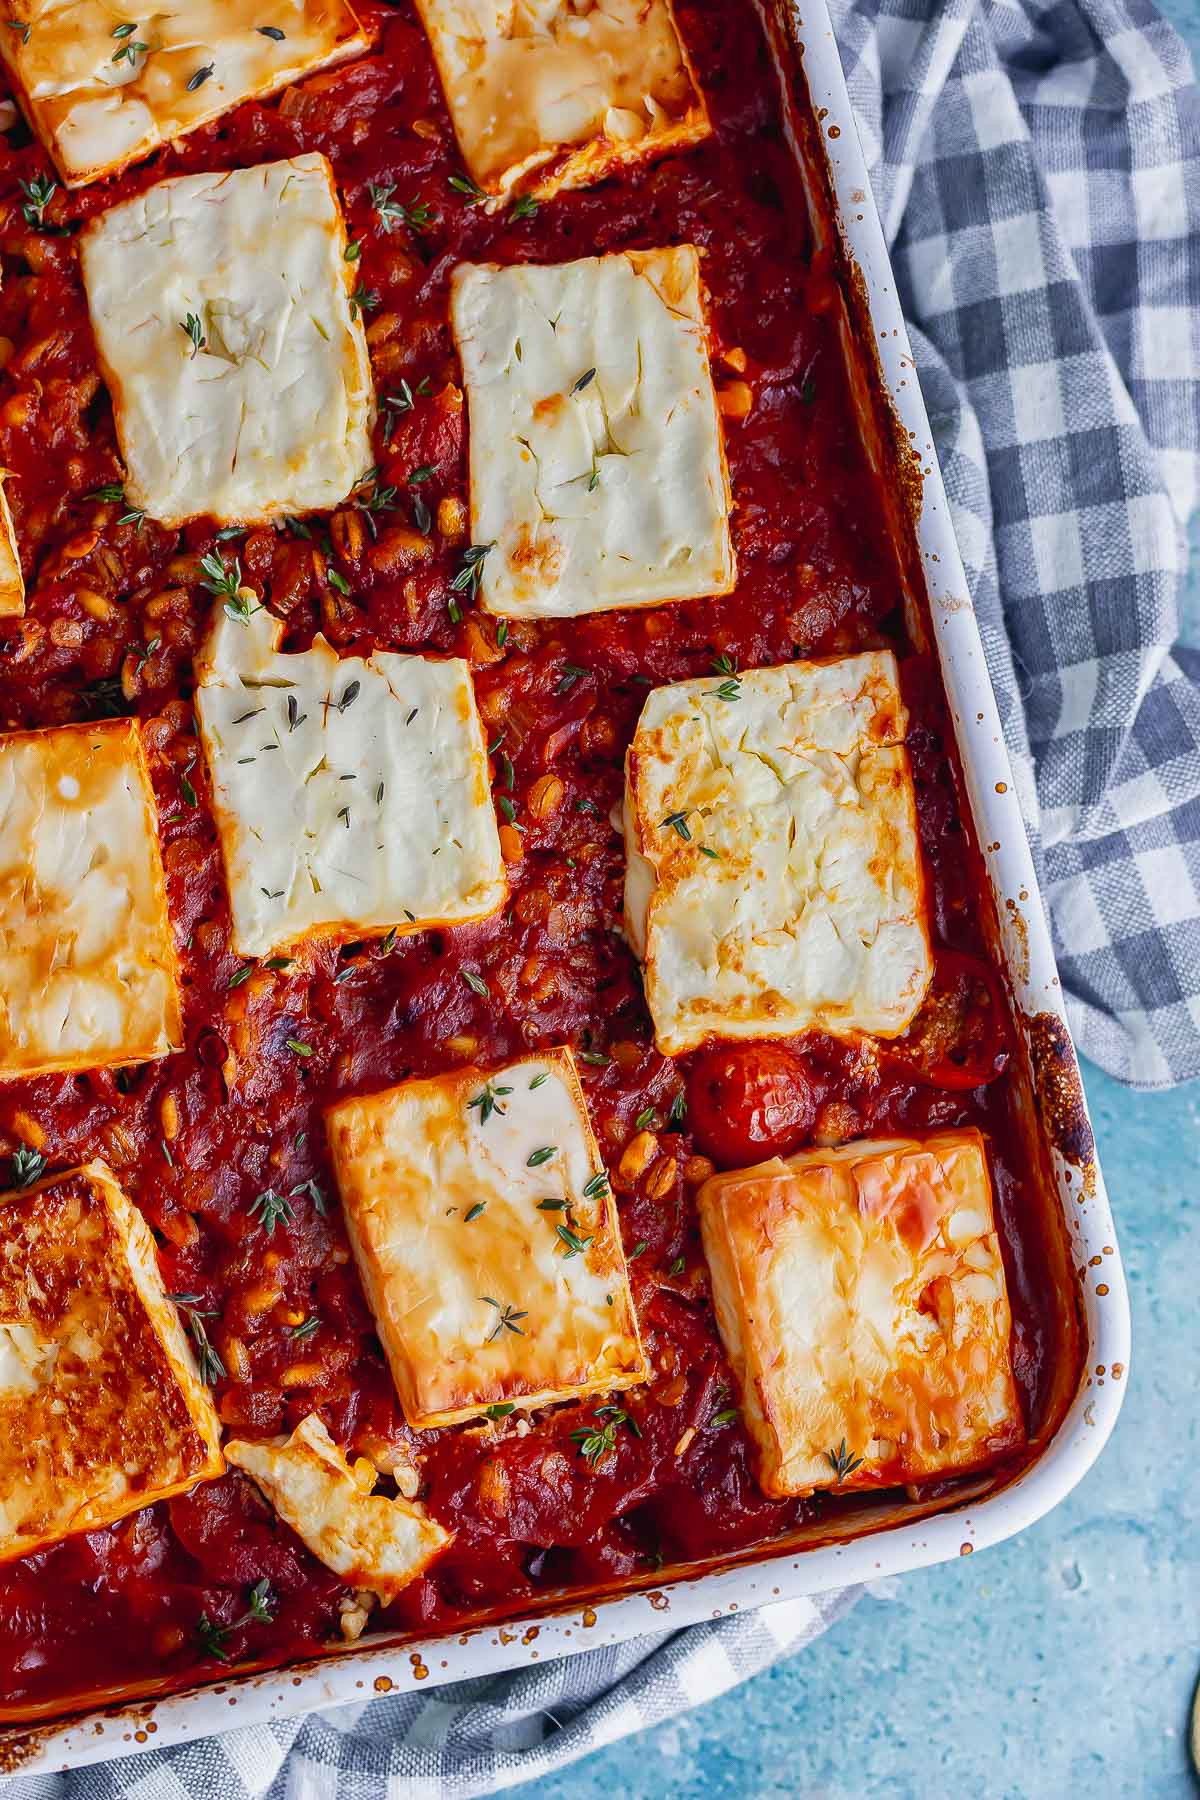 Cheese and tomato bake on a checked cloth